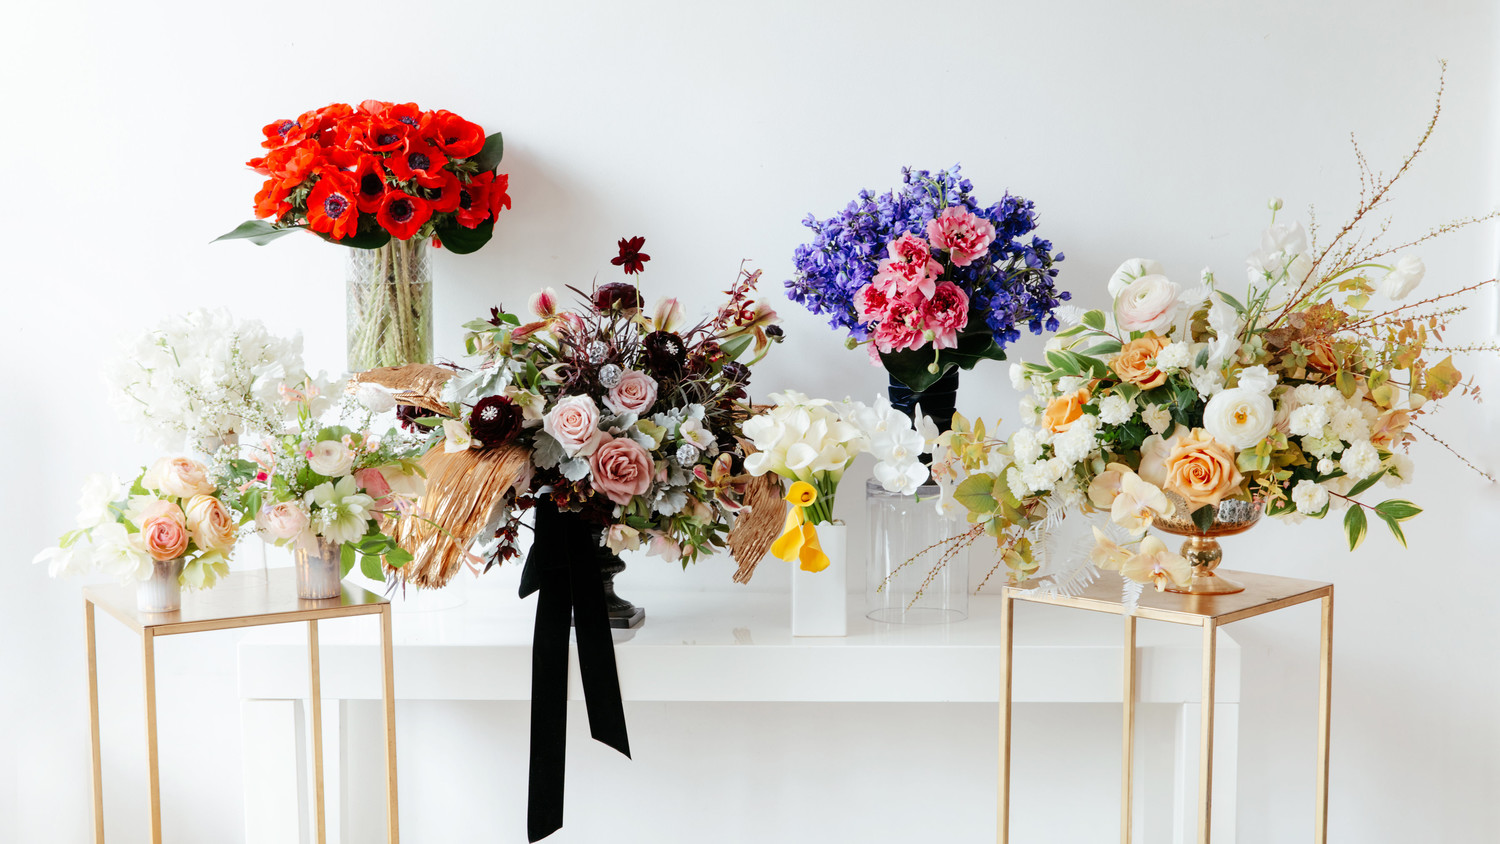 Floral arrangements images Birthday Colorful Floral Arrangements Inspired By 2017 Oscar Looks Martha Stewart Weddings Stunning Floral Arrangements Inspired By The 2017 Oscar Red Carpet